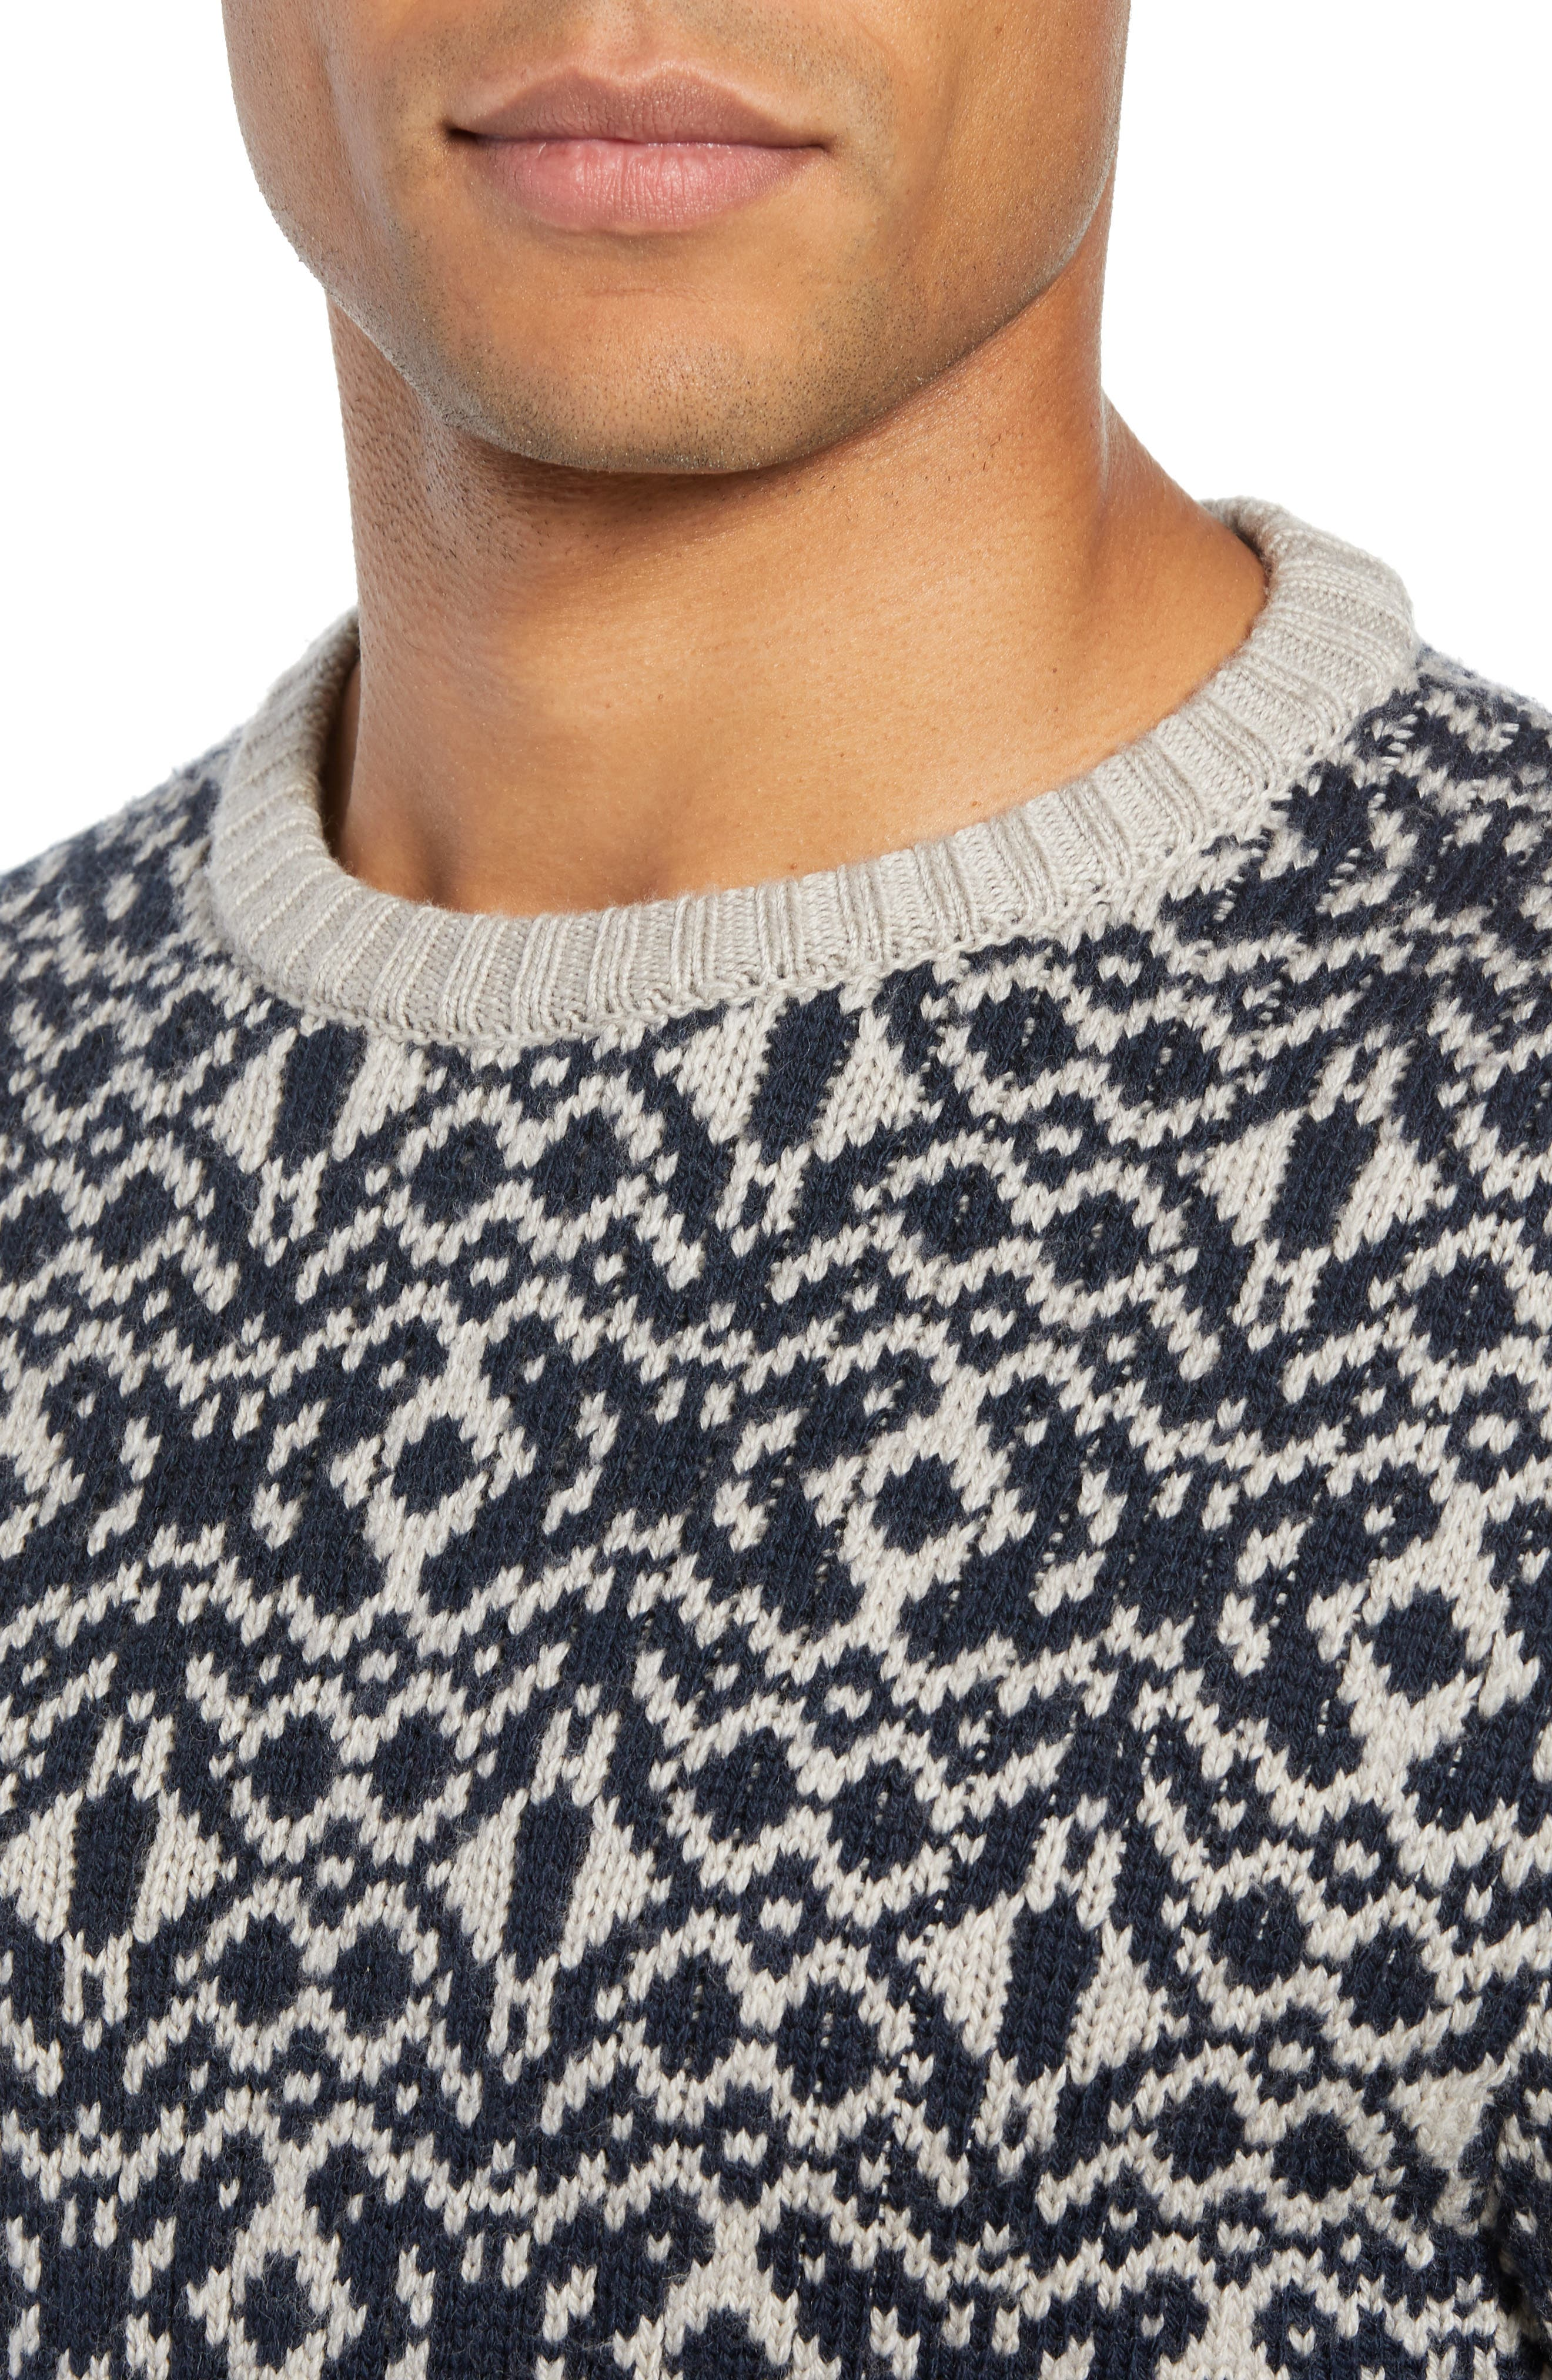 Patterned Wool Crewneck Sweater,                             Alternate thumbnail 4, color,                             STONE